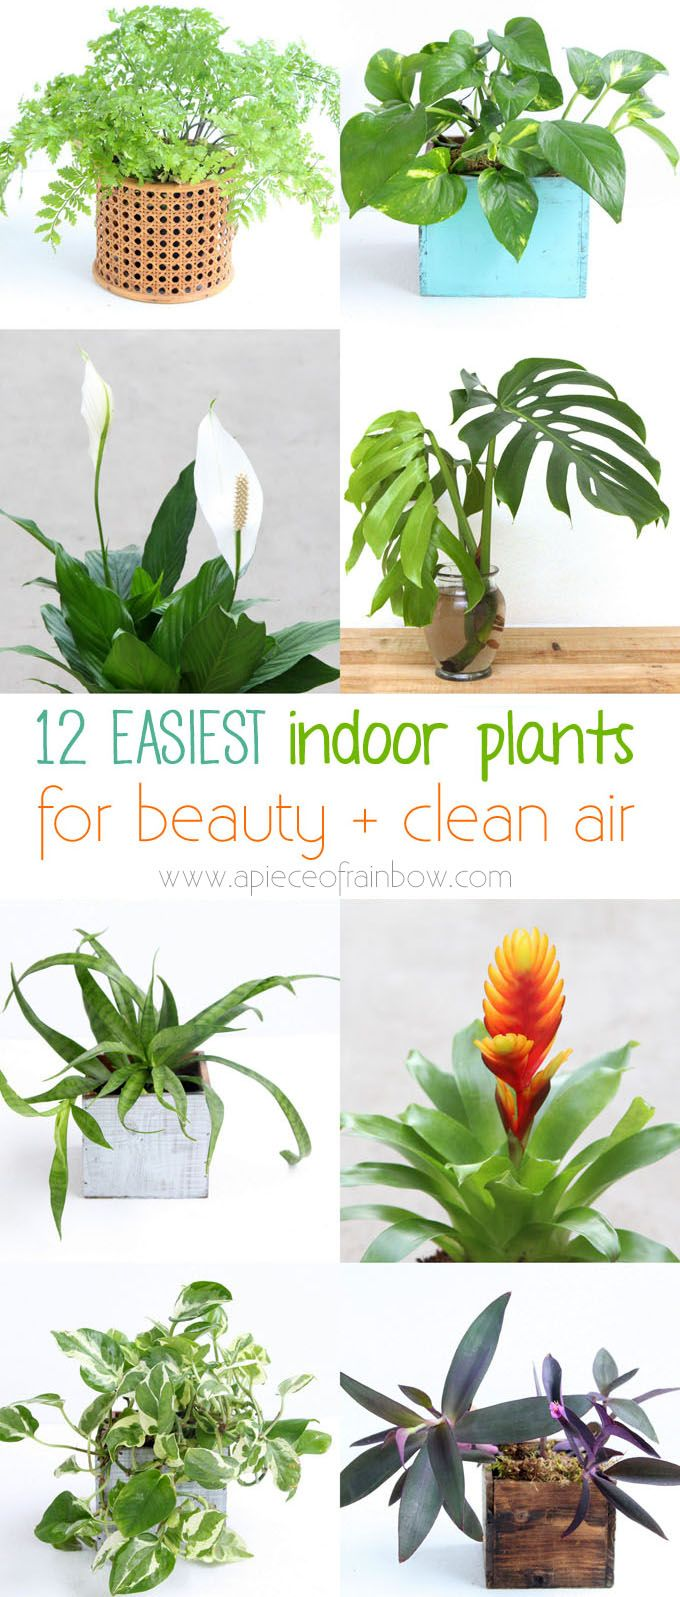 7692 best images about remodelaholic contributors on for Easy to grow indoor plants